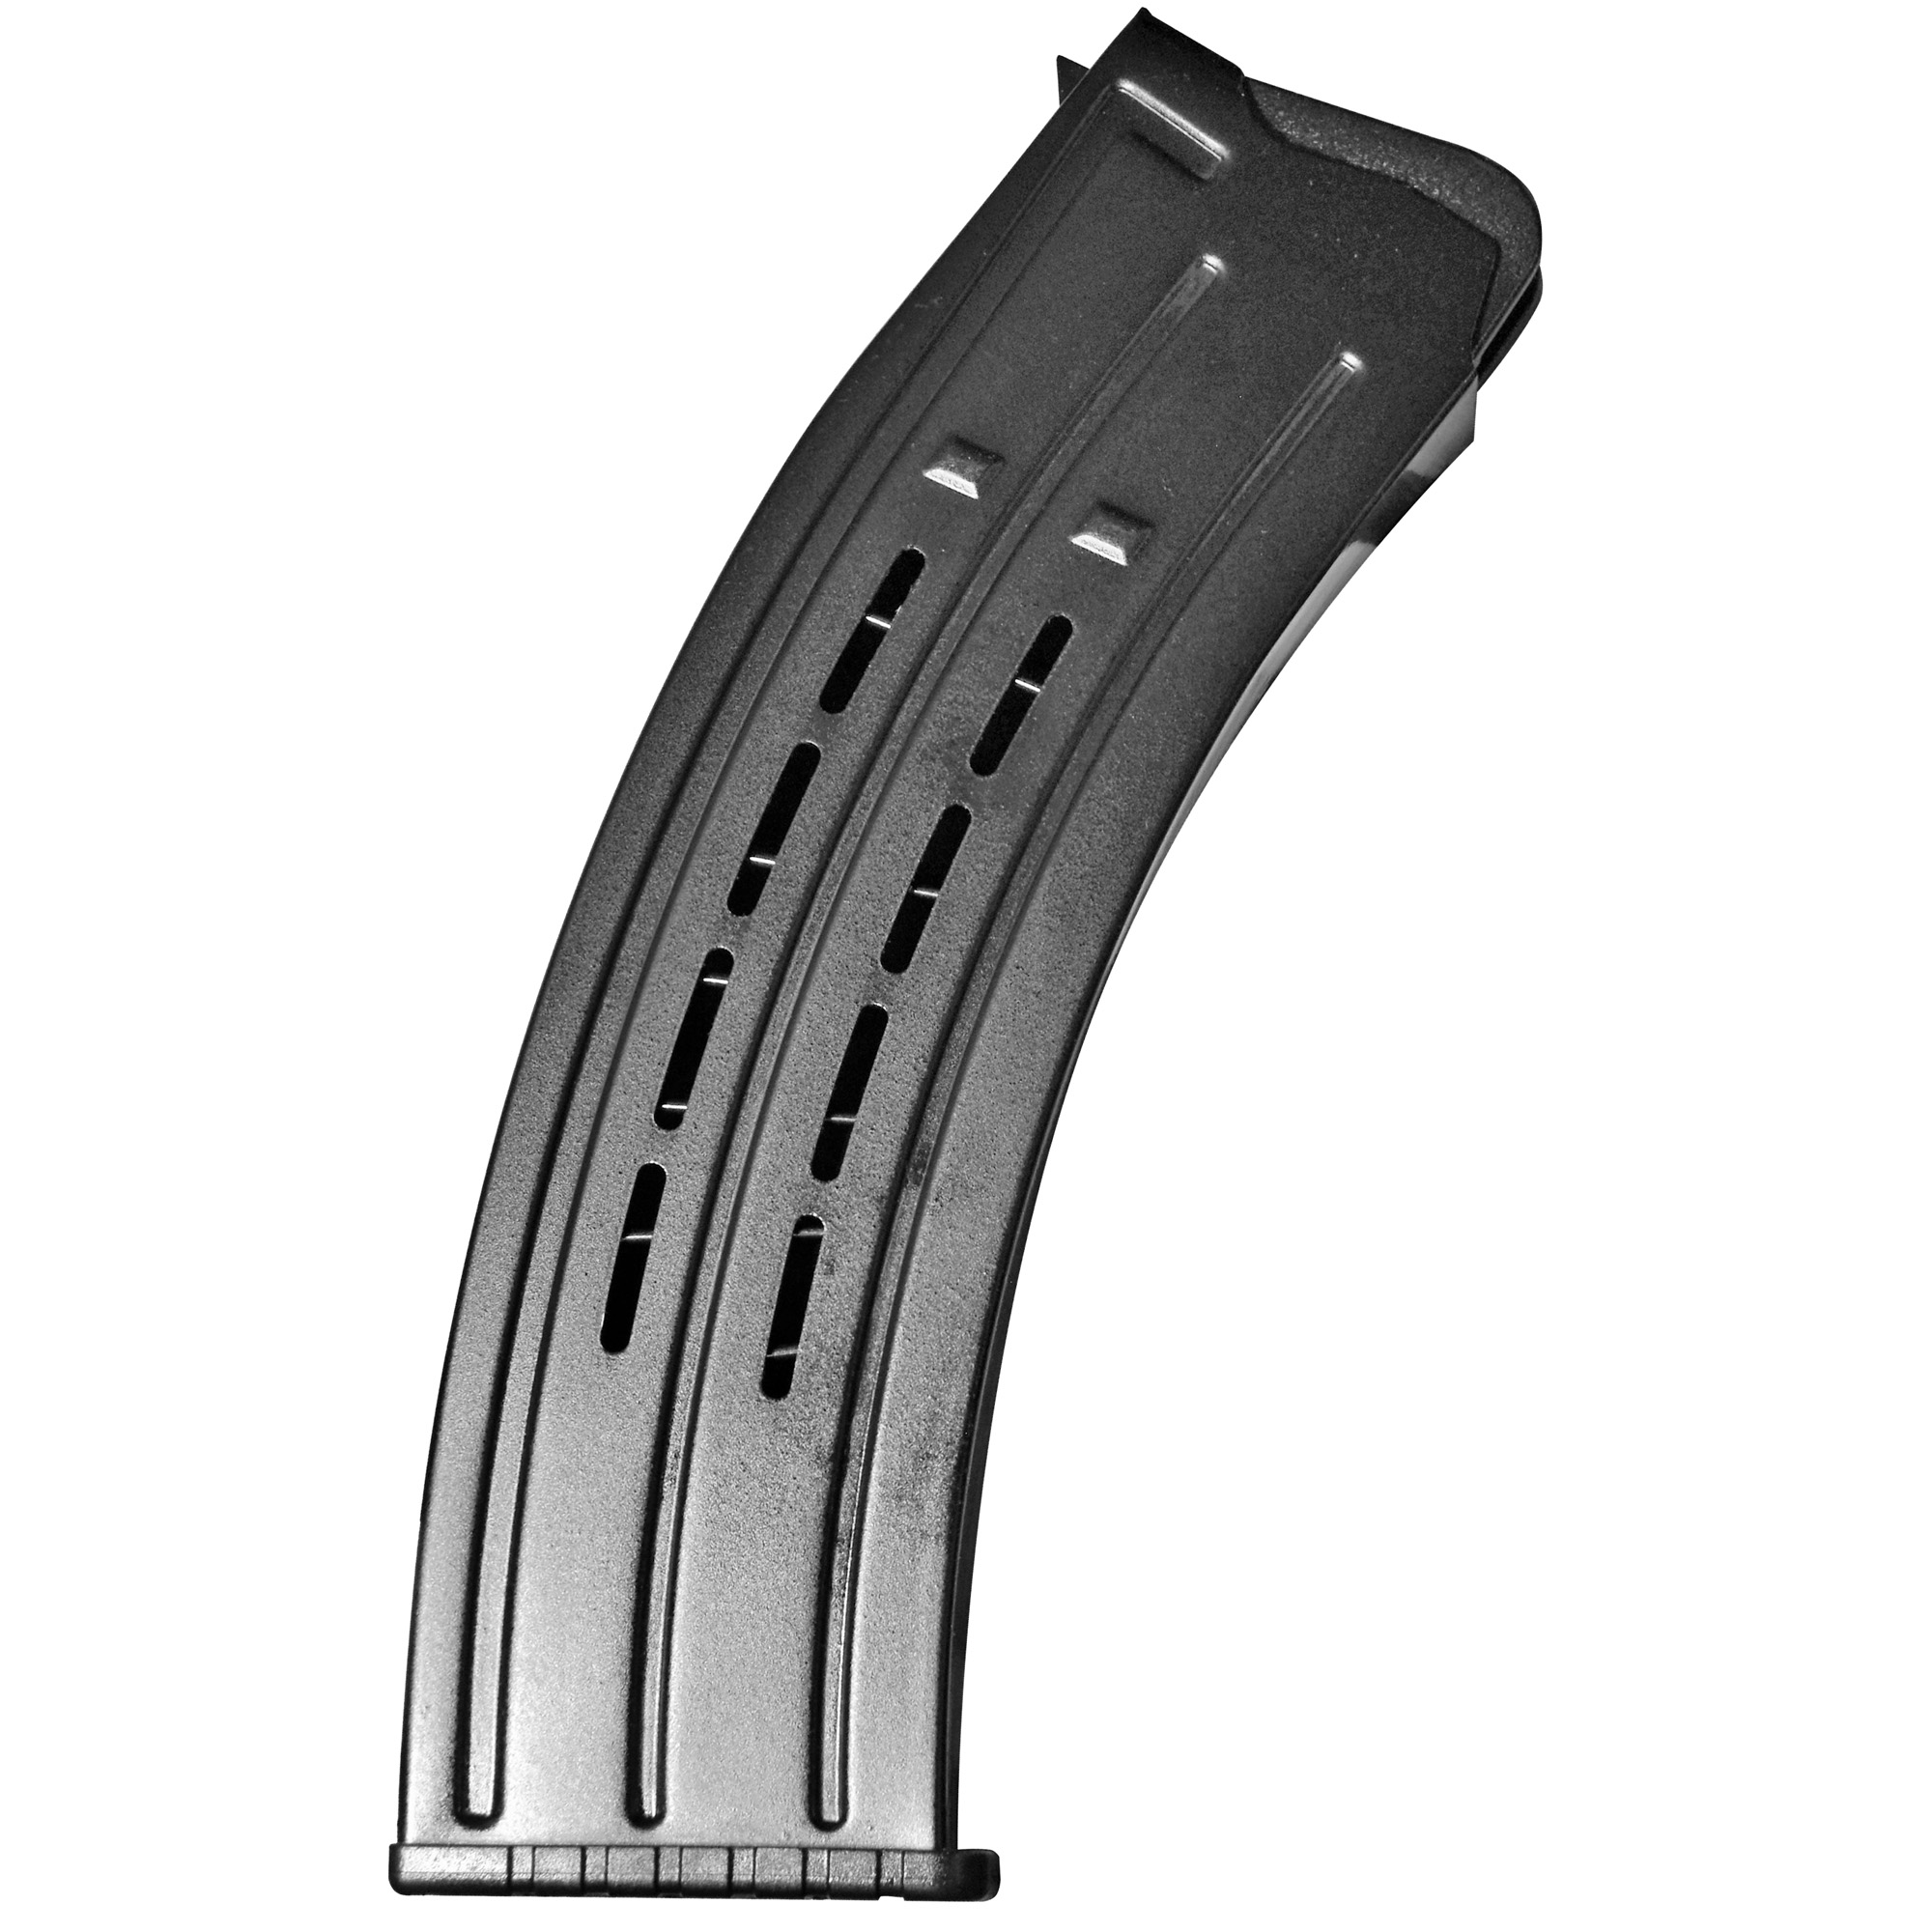 This RIA Imports magazine for VR60/80 and Bull rocket shotguns is a standard factory replacement magazine. This magazine has a 9 round capacity and is chambered in 12GA.